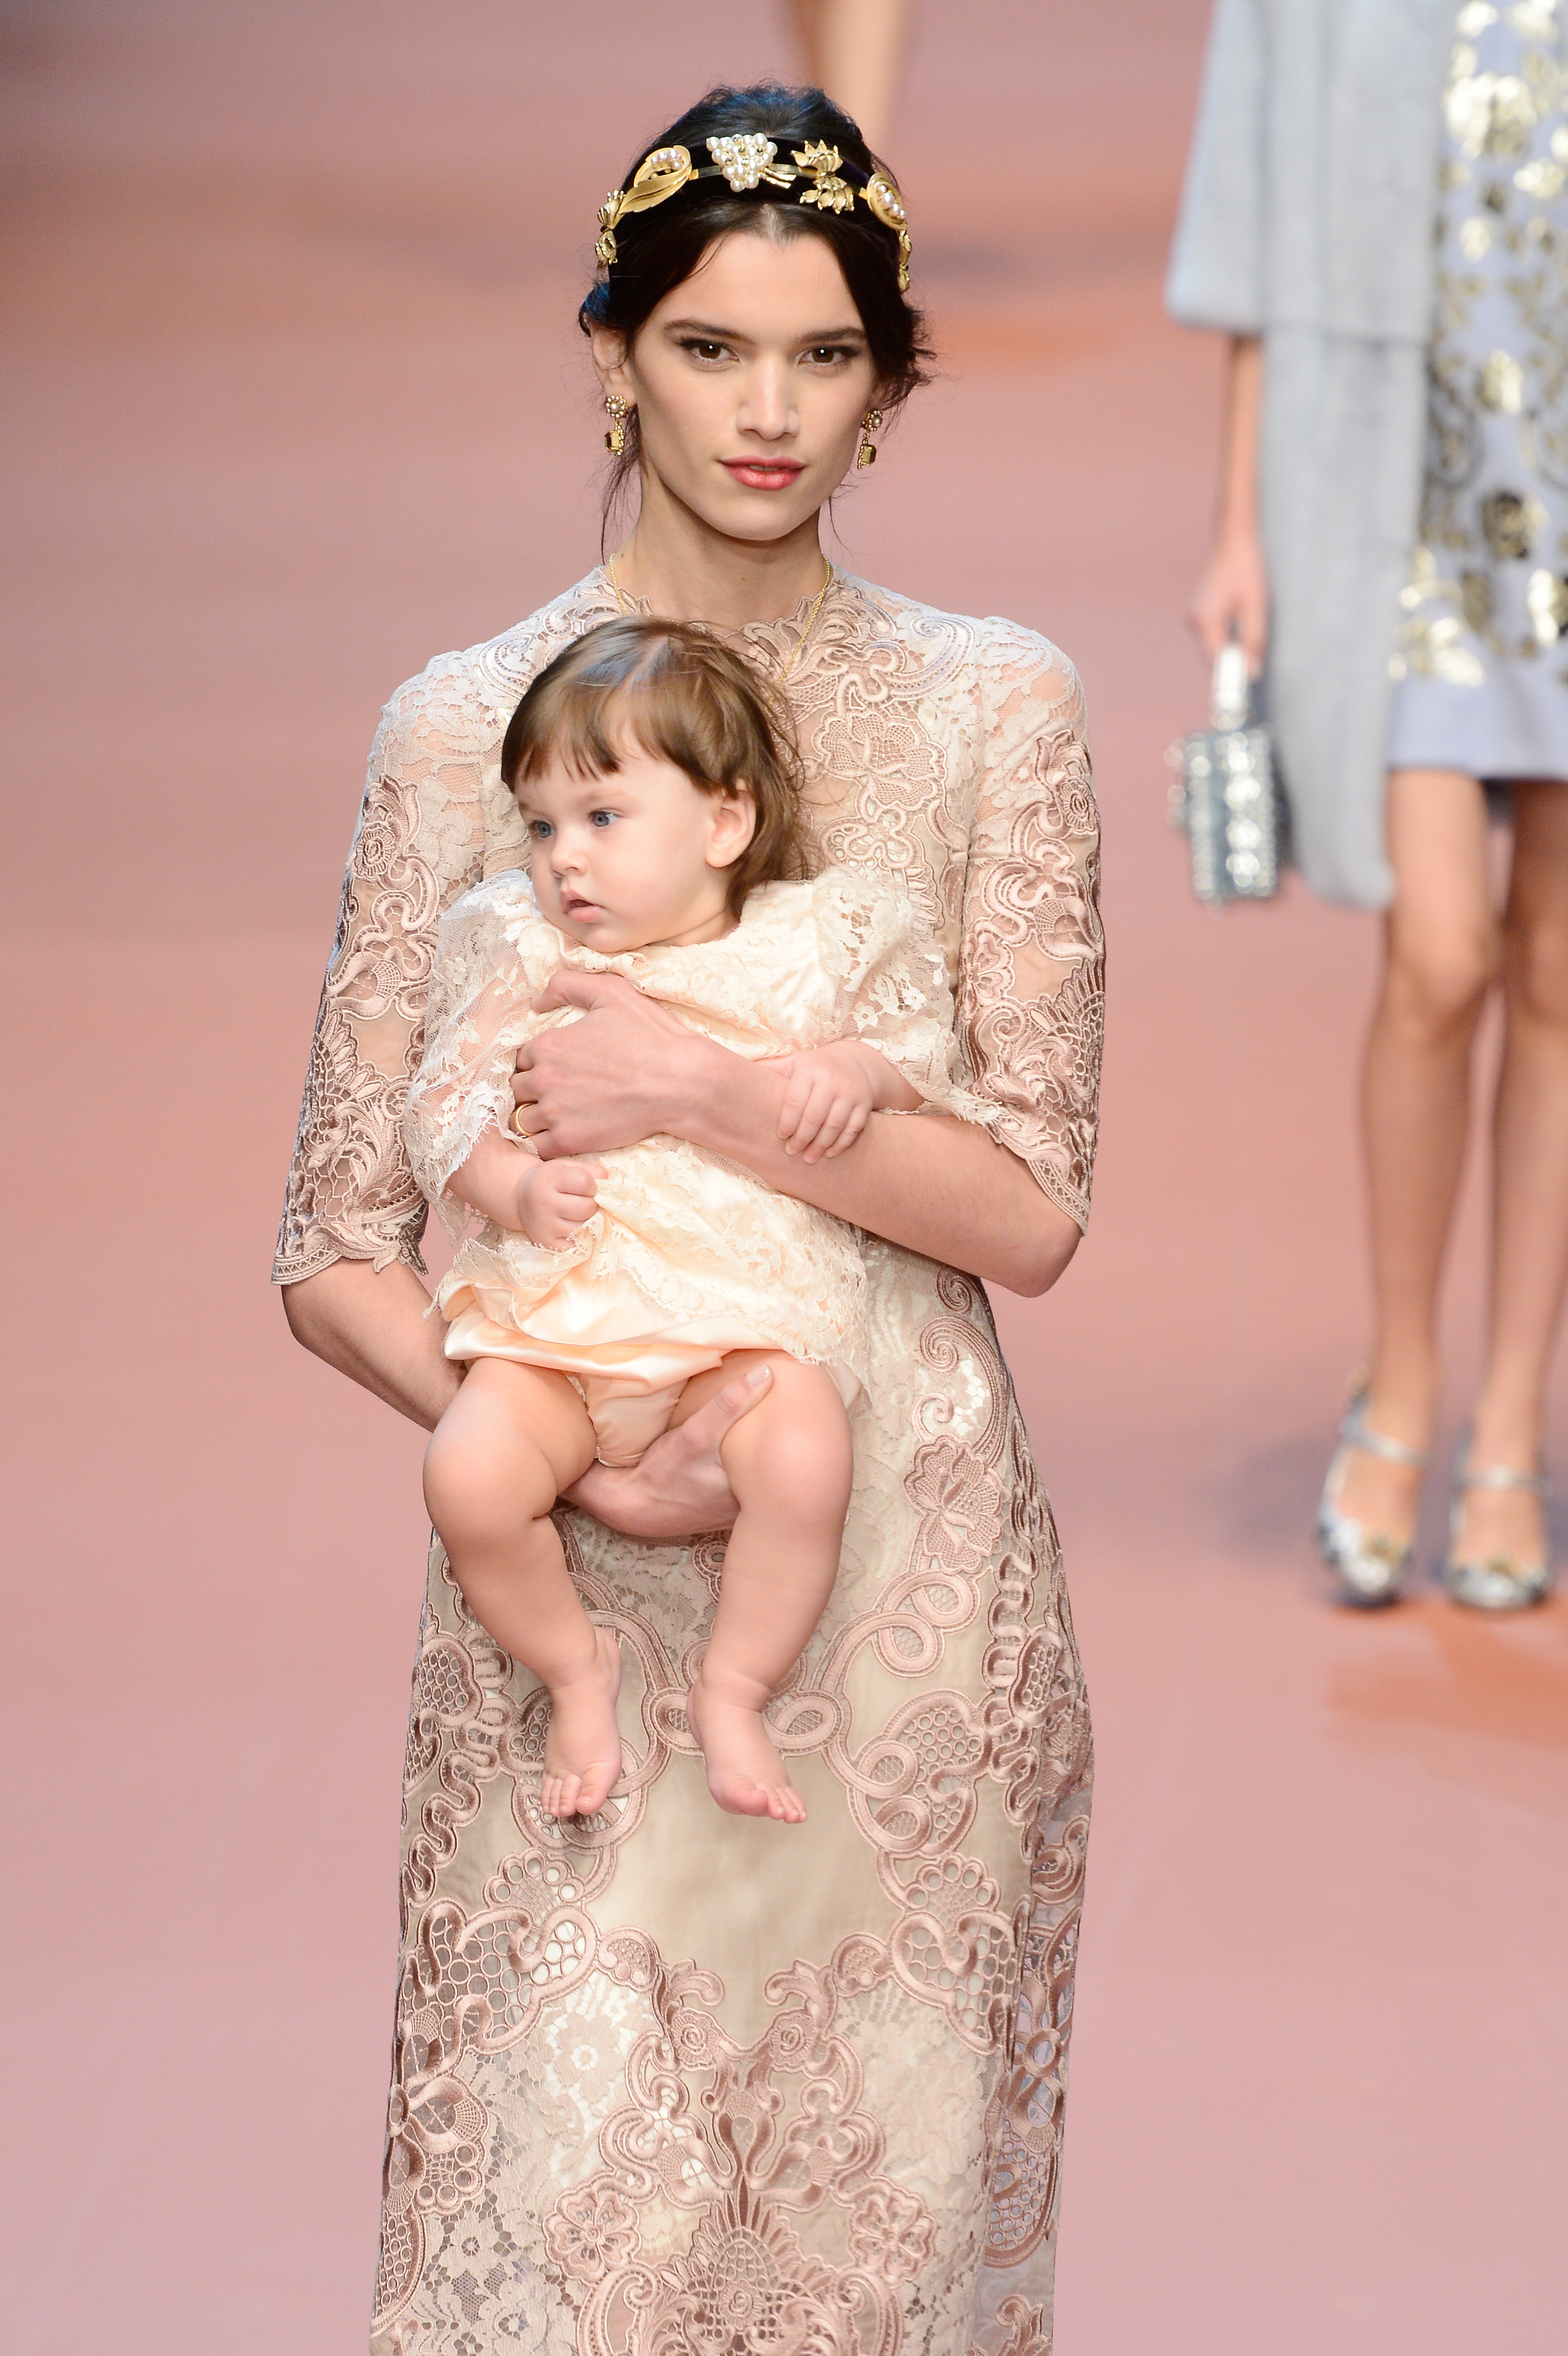 A model walks with a baby on the Dolce & Gabbana runway (Photo: Getty).